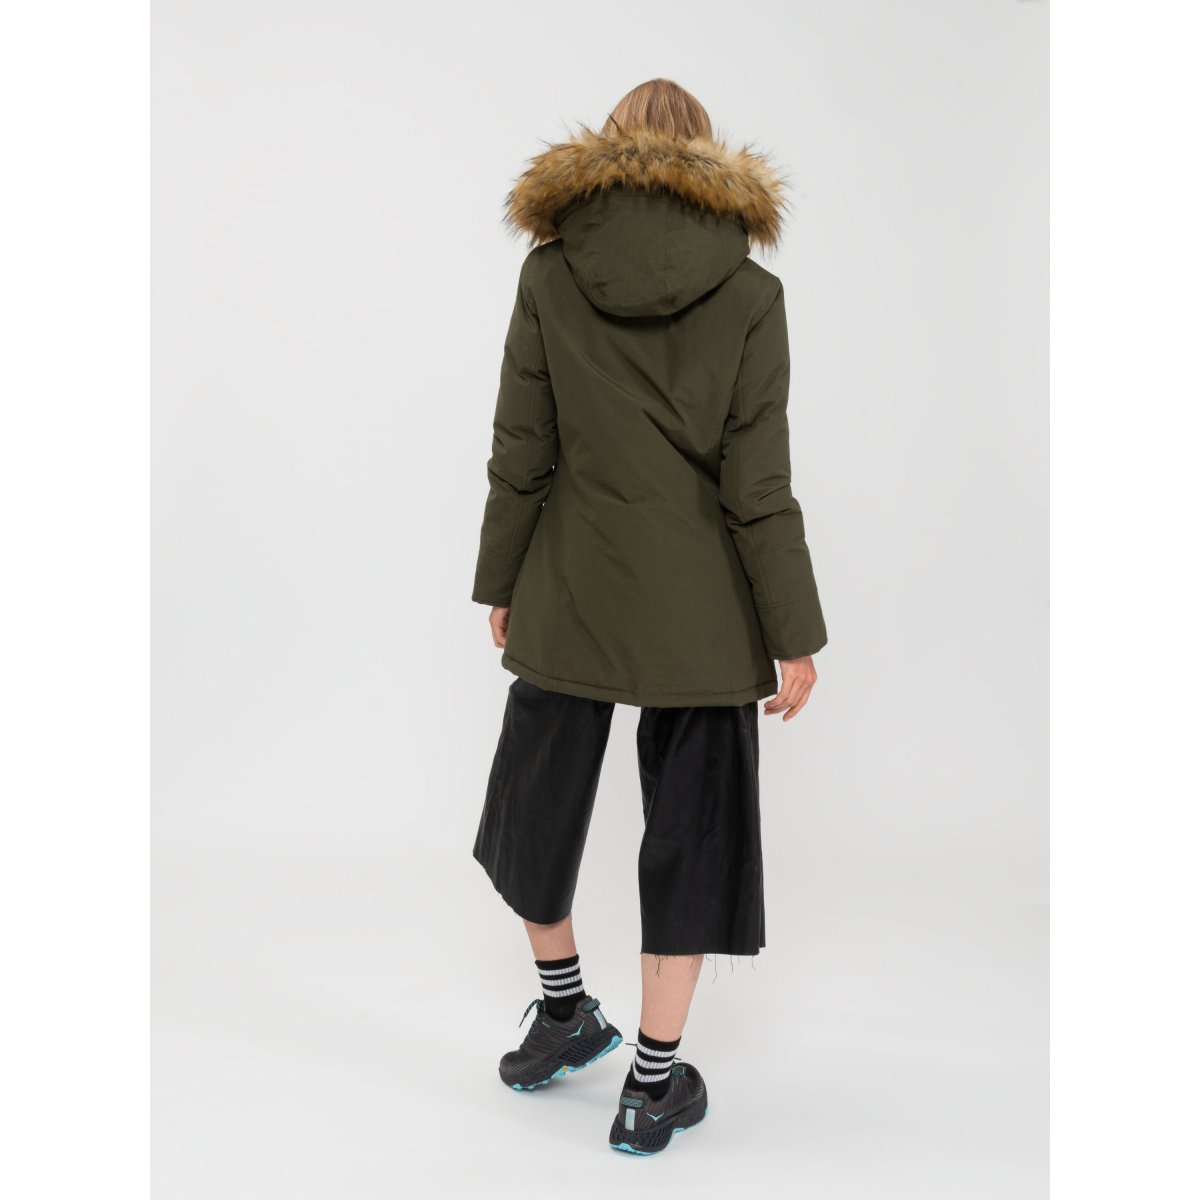 Fundy Bay Recycled Urban Activewear Canadian Women